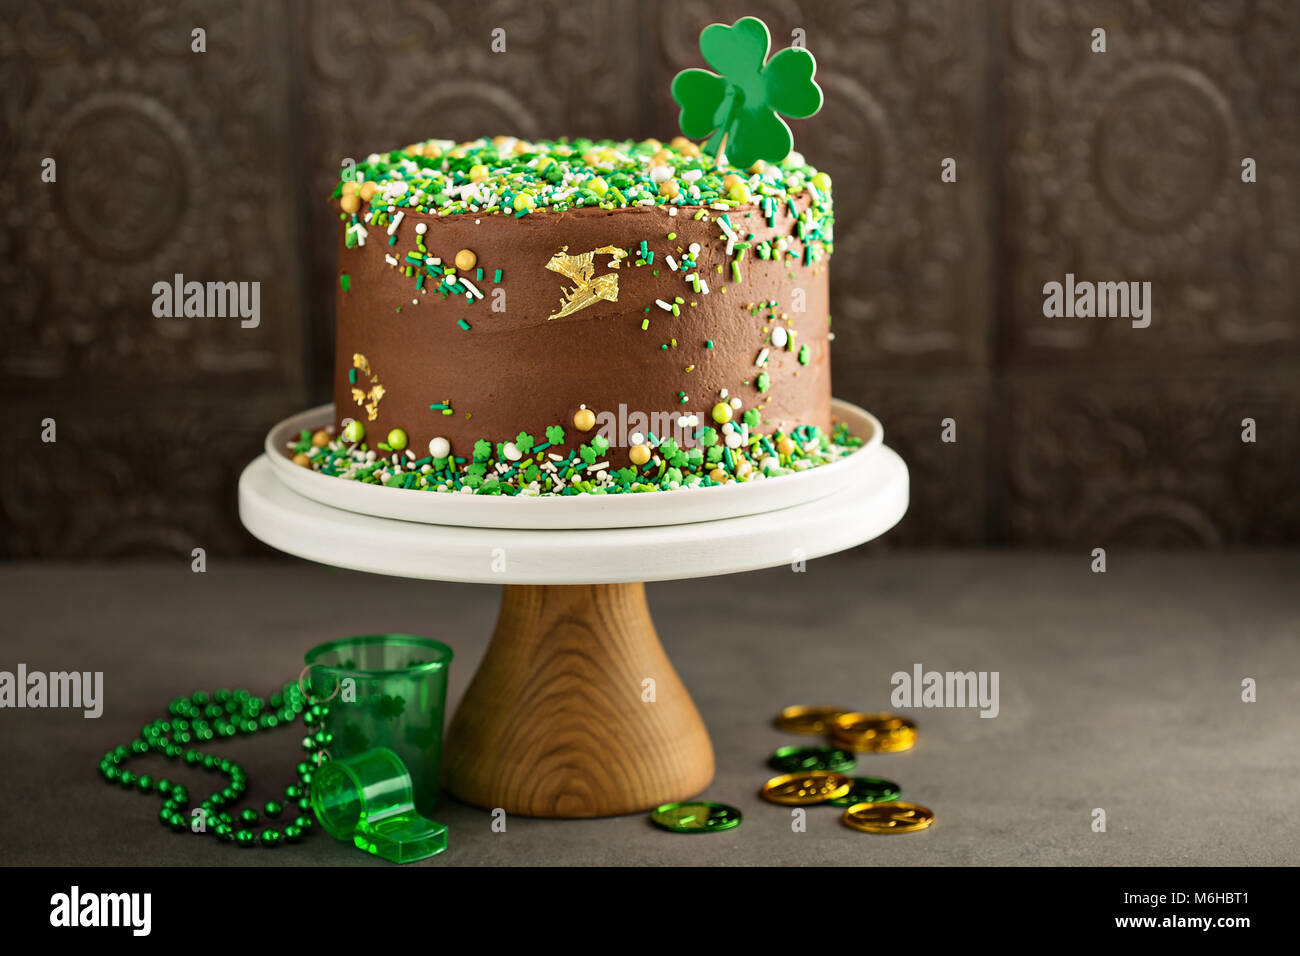 St Patricks day chocolate cake - Stock Image